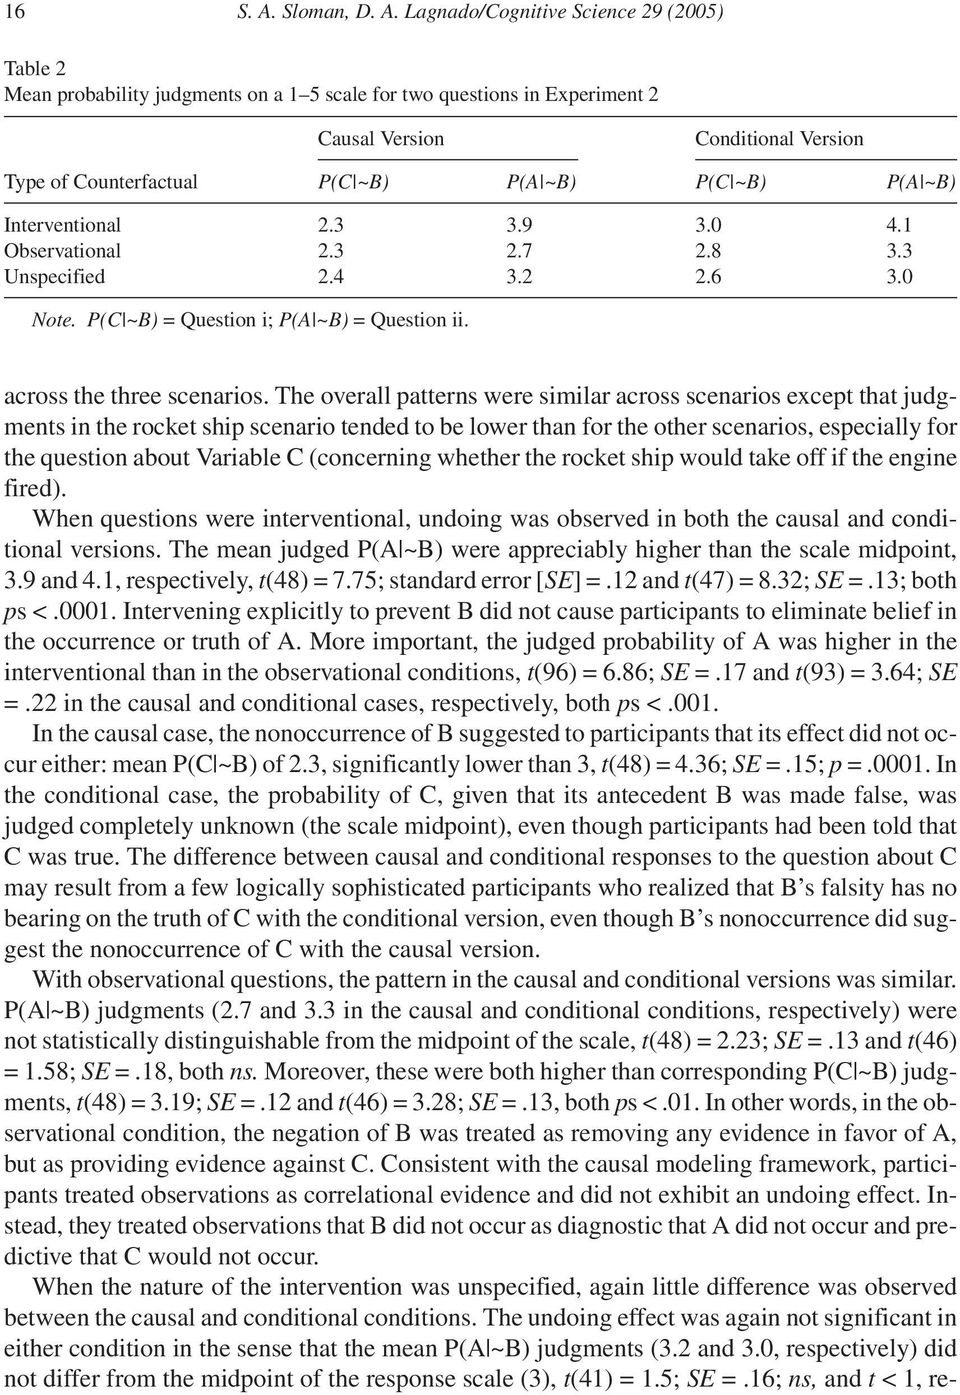 Lagnado/Cognitive Science 29 (2005) Table 2 Mean probability judgments on a 1 5 scale for two questions in Experiment 2 Causal Version Conditional Version Type of Counterfactual P(C ~B) P(A ~B) P(C